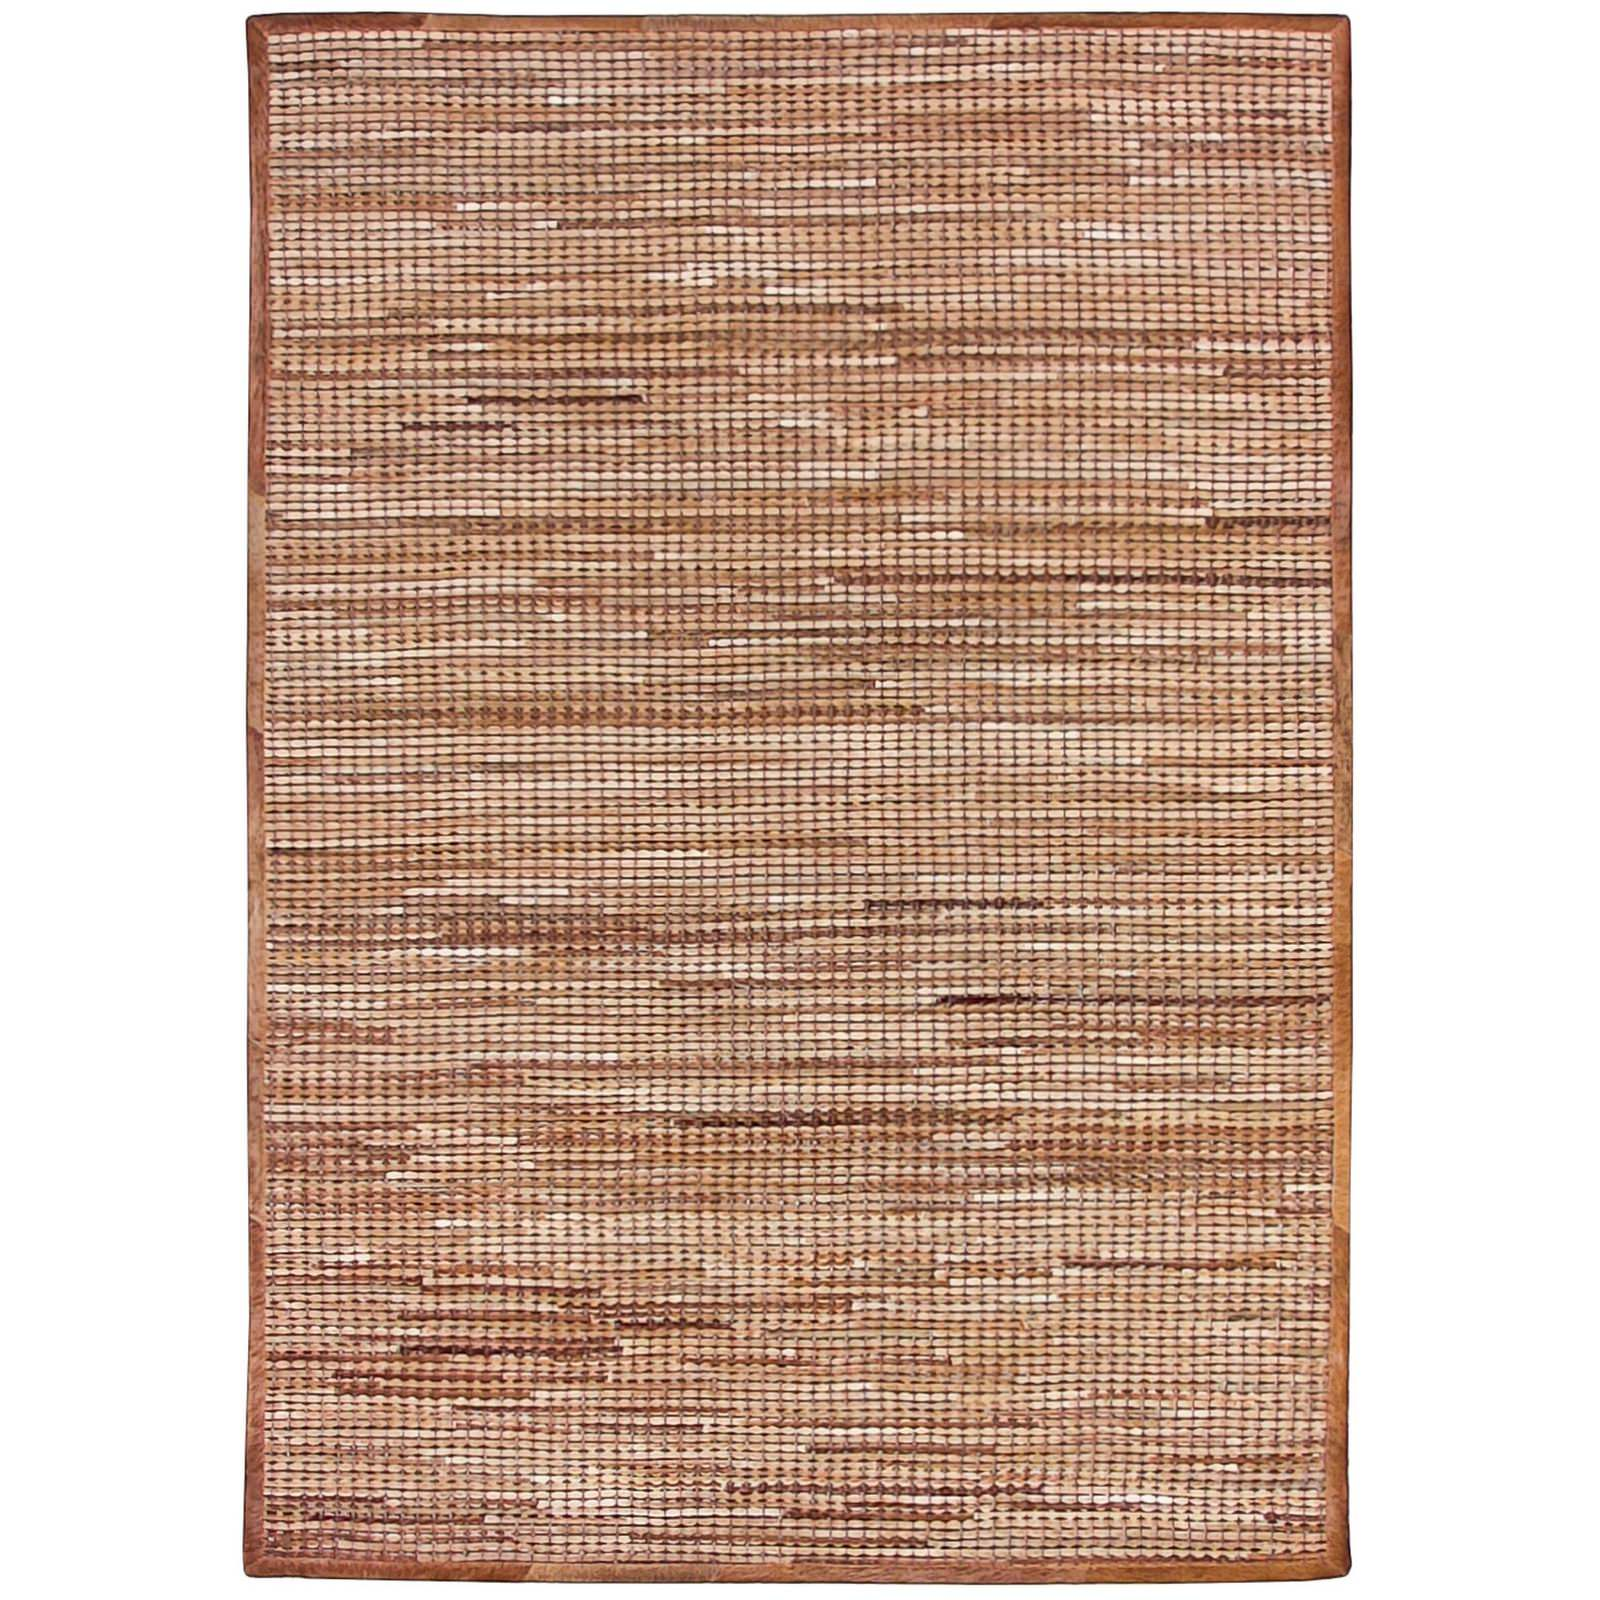 Chase Handwoven Hide & Leather Rug, 250x300cm, Caramel